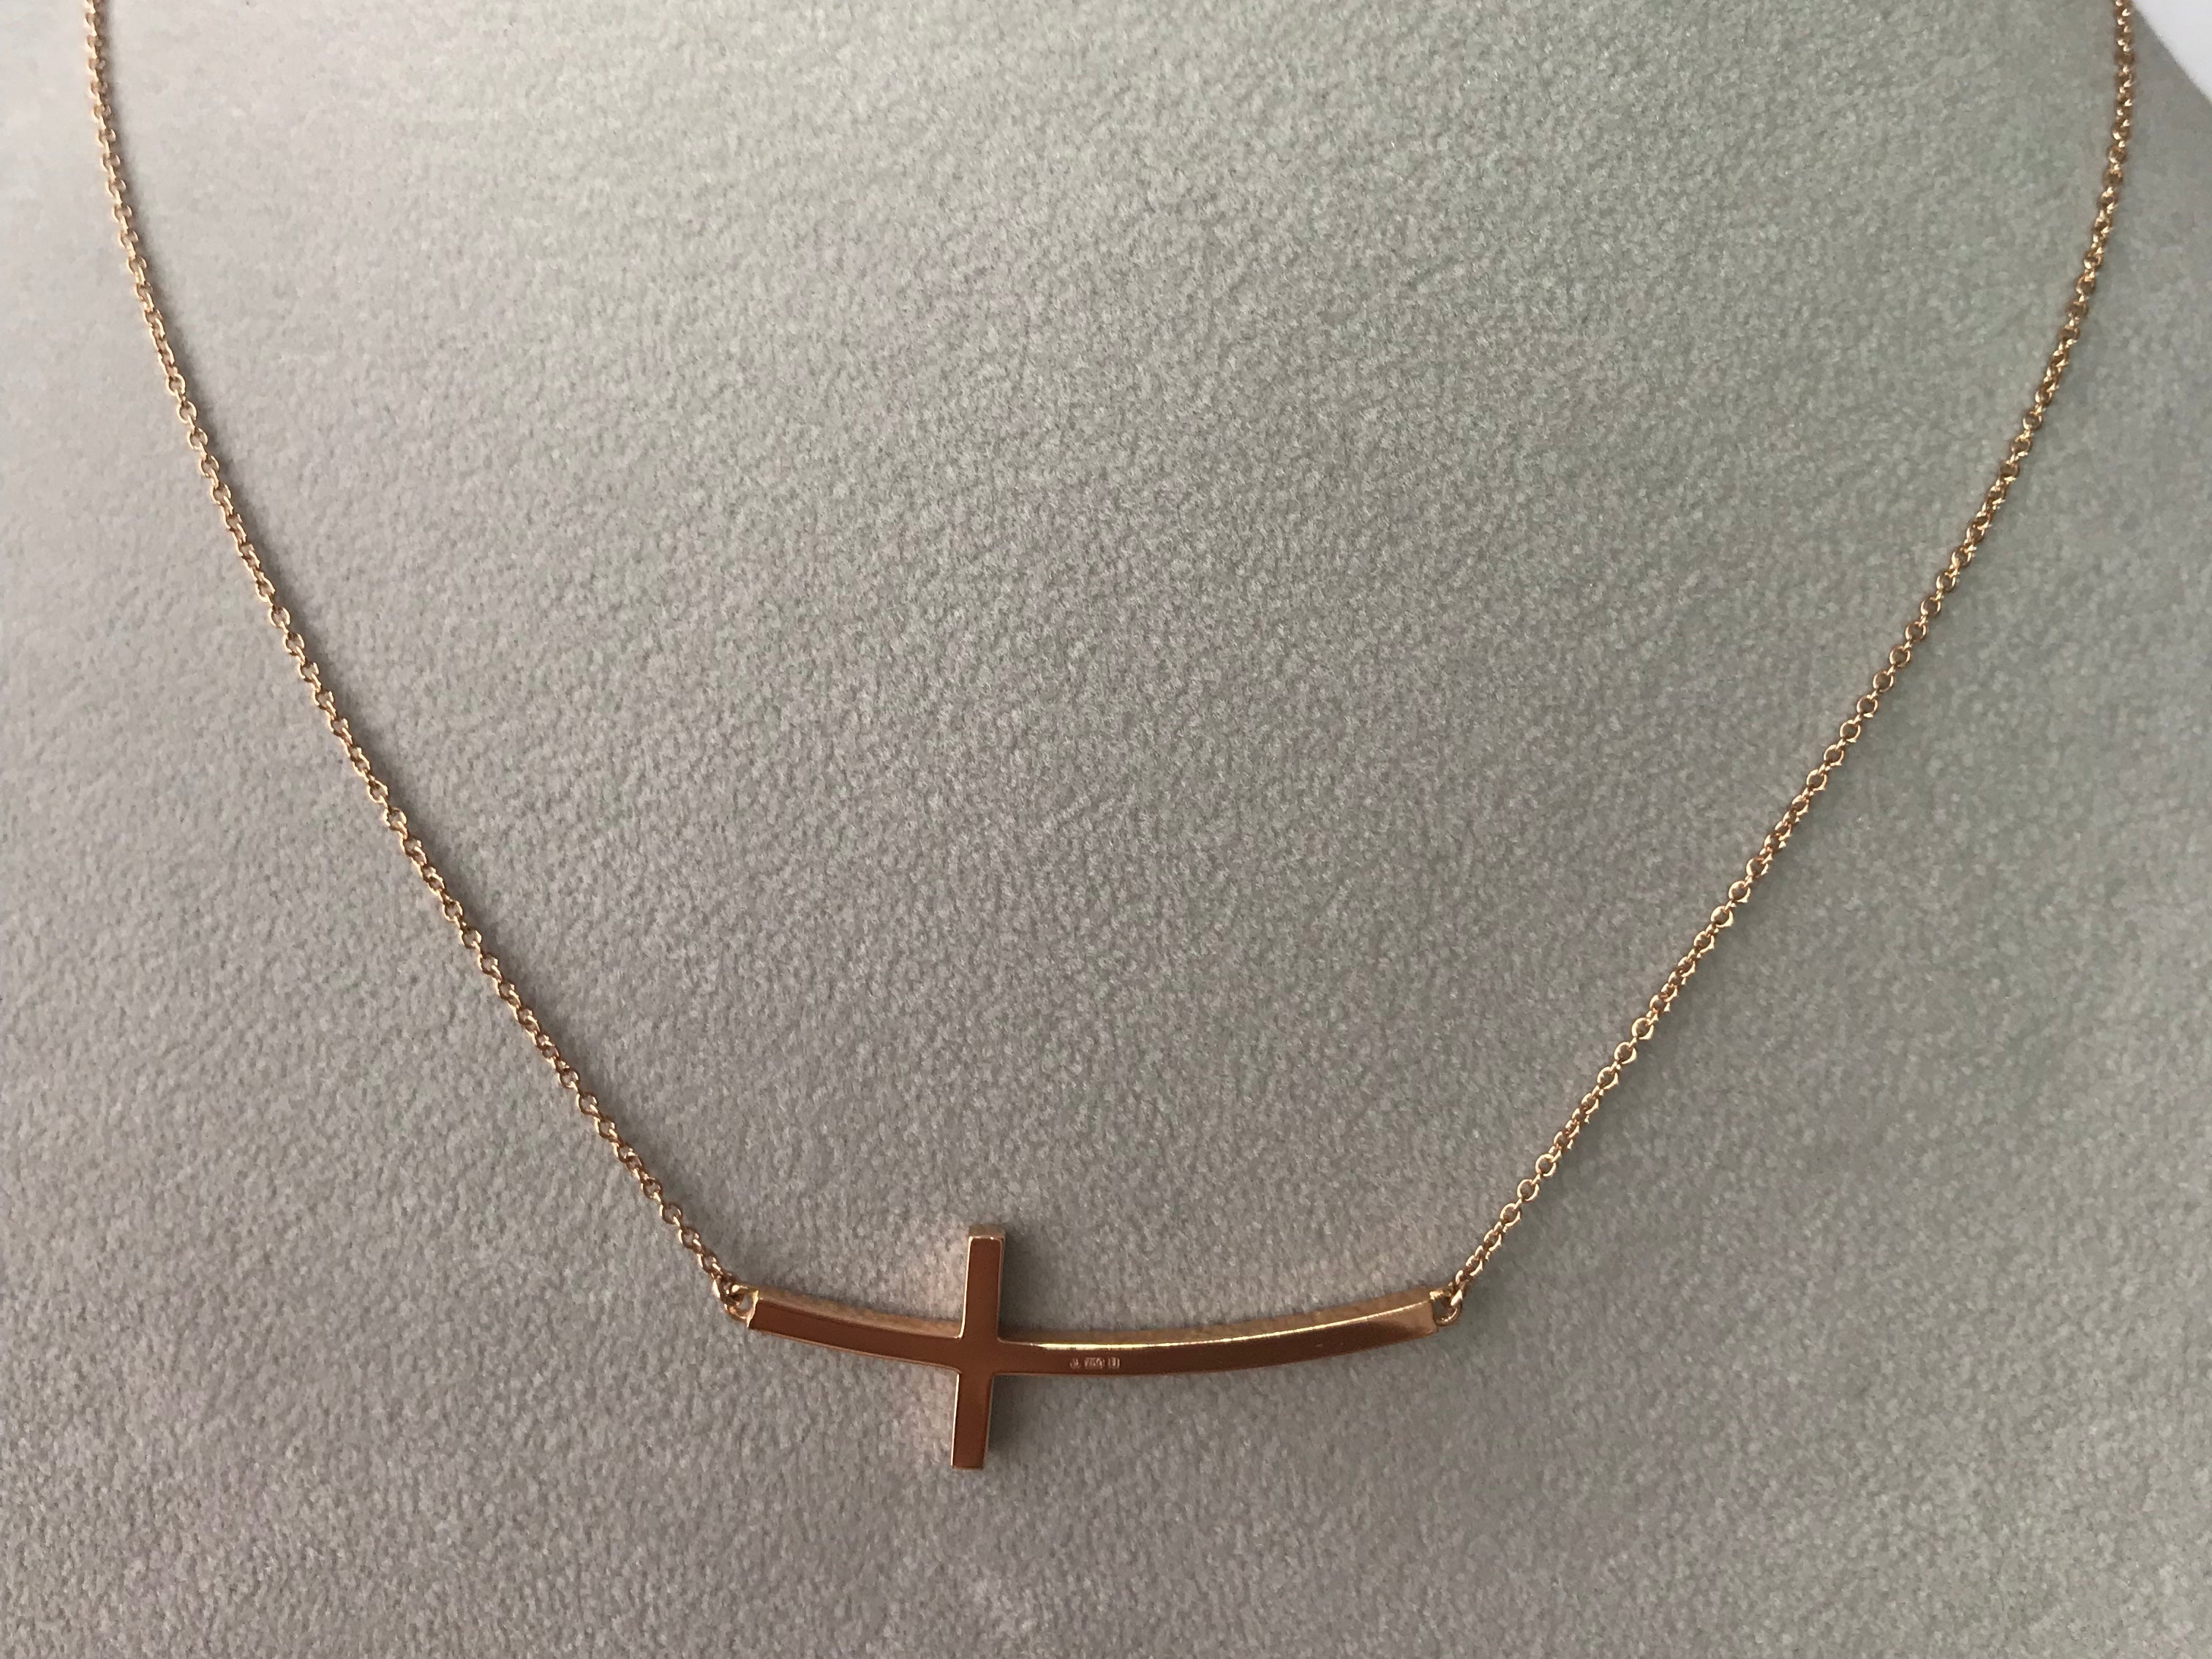 A 18k yellow gold CROSS across necklace